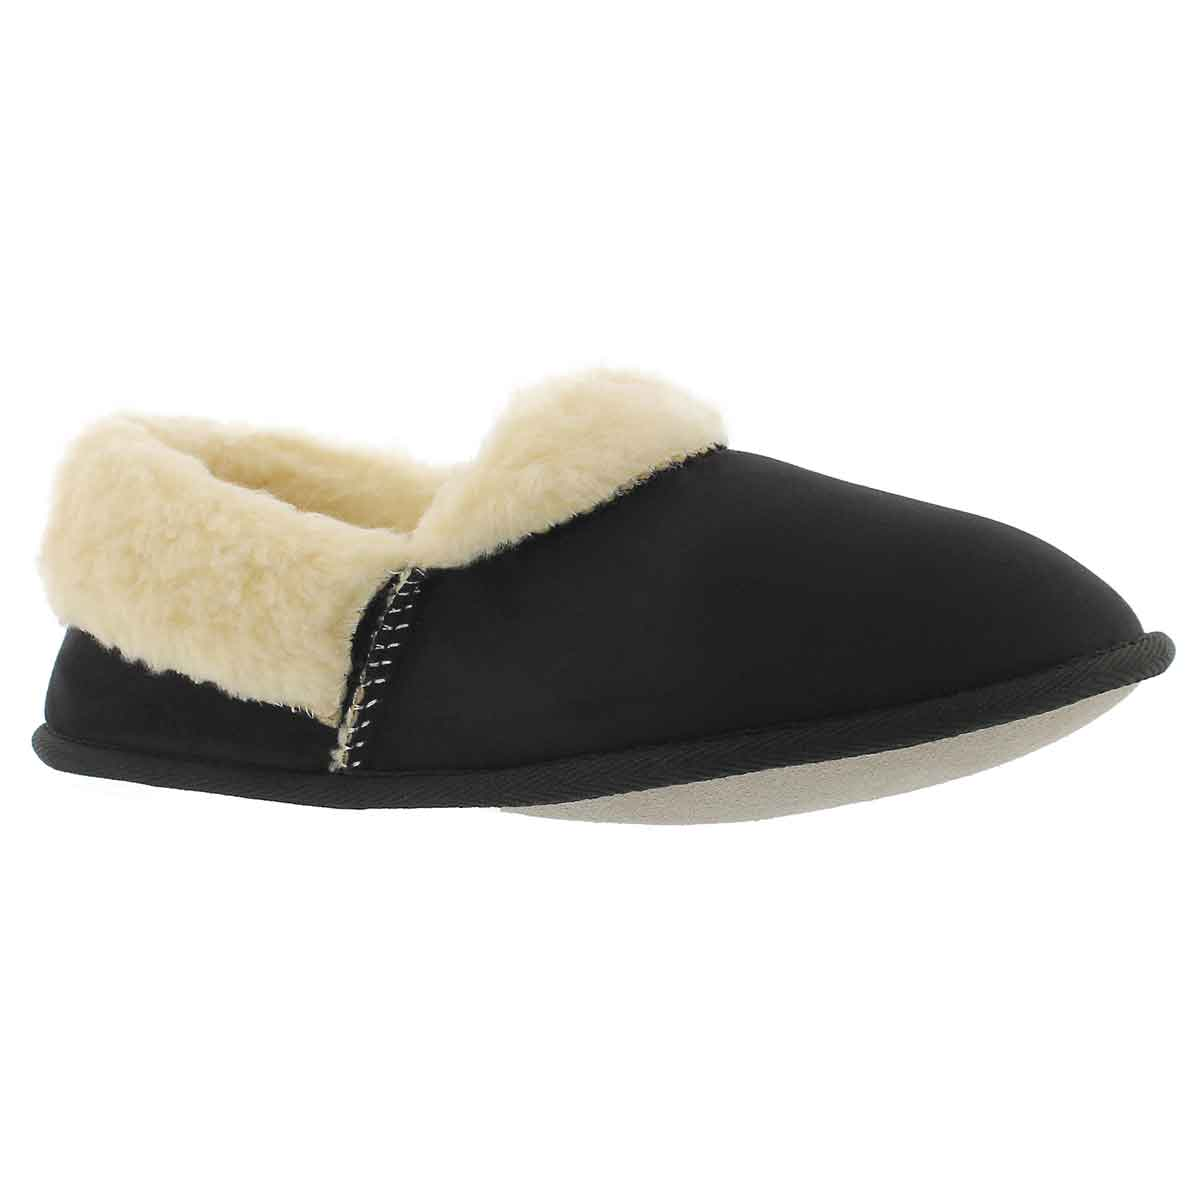 Mns Flapjack black closed back slipper